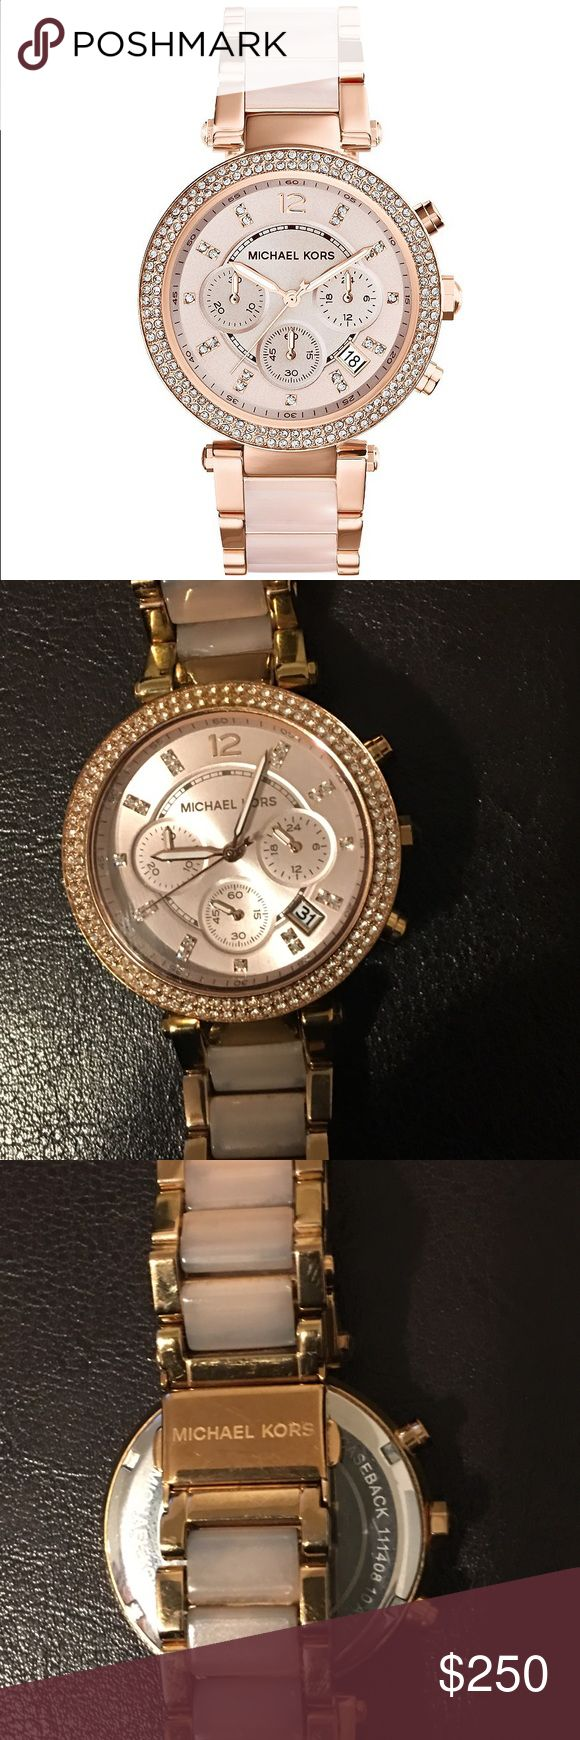 Michael Kors Parker Rose/Blush Chronograph Watch Michael Kors Parker Rose Gold Tone & Blush Chronograph Watch  watch features:  rose gold tone plated stainless steel and acetate bracelet and round case  light rose gold tone dial  double row of crystals around bezel Michael Kors Accessories Watches